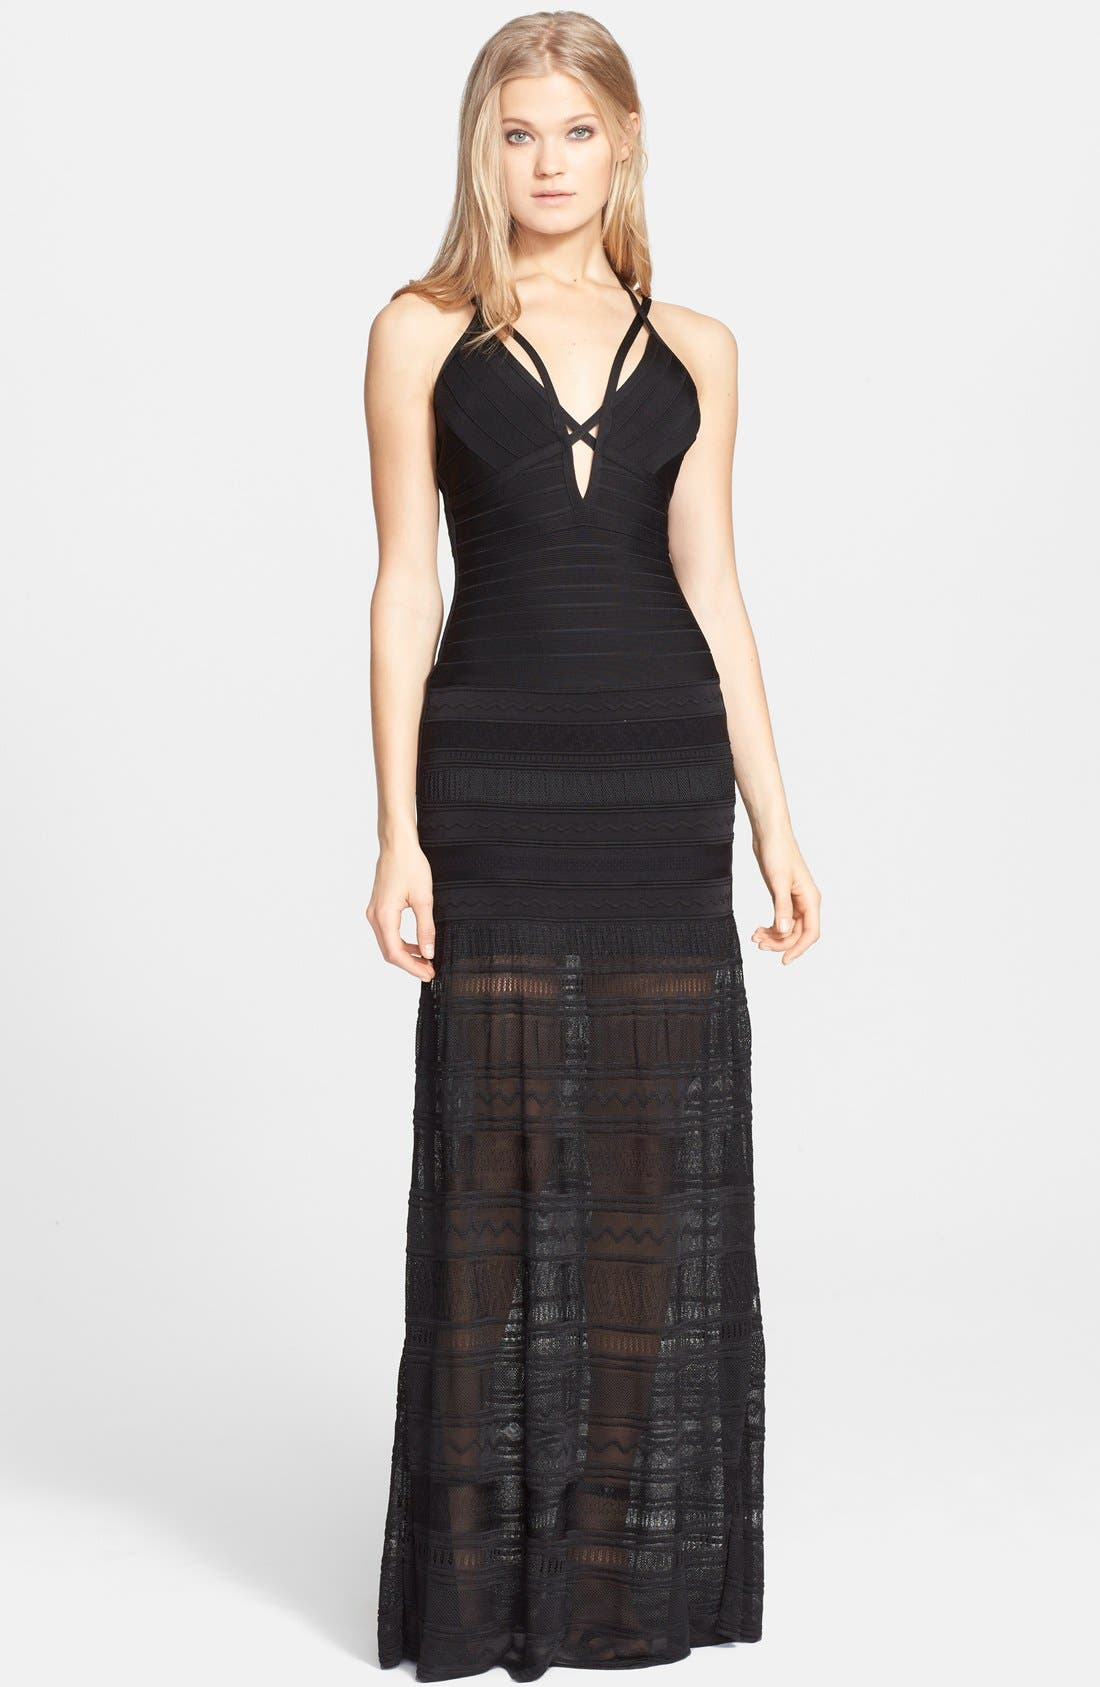 Main Image - Herve Leger Mixed Stitch Bandage Gown